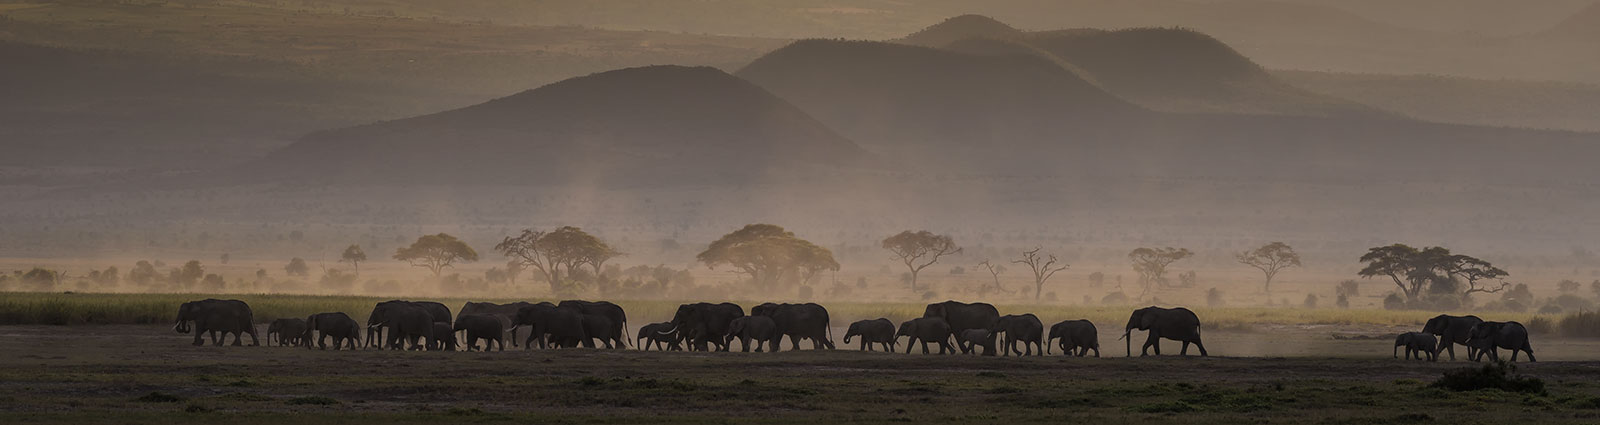 Elephants at sunset, Amboseli National Park, Africa